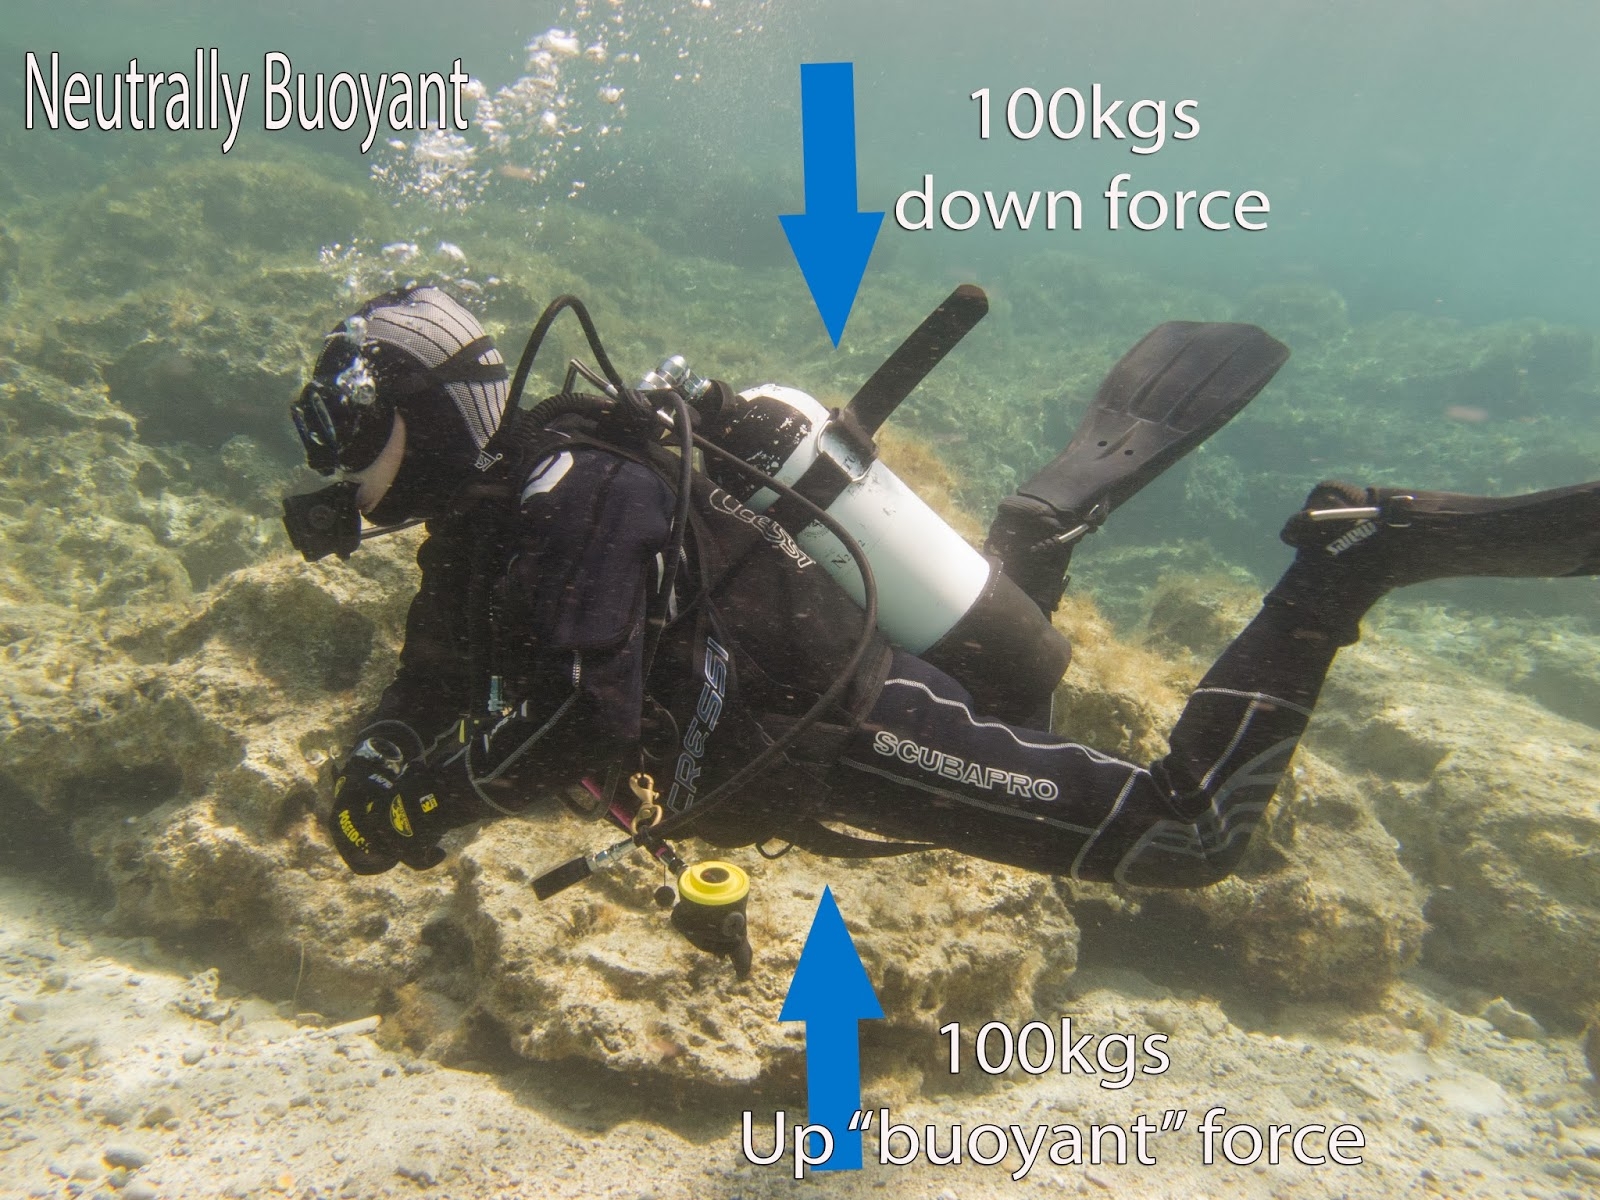 Diver has equal water displacement to weight